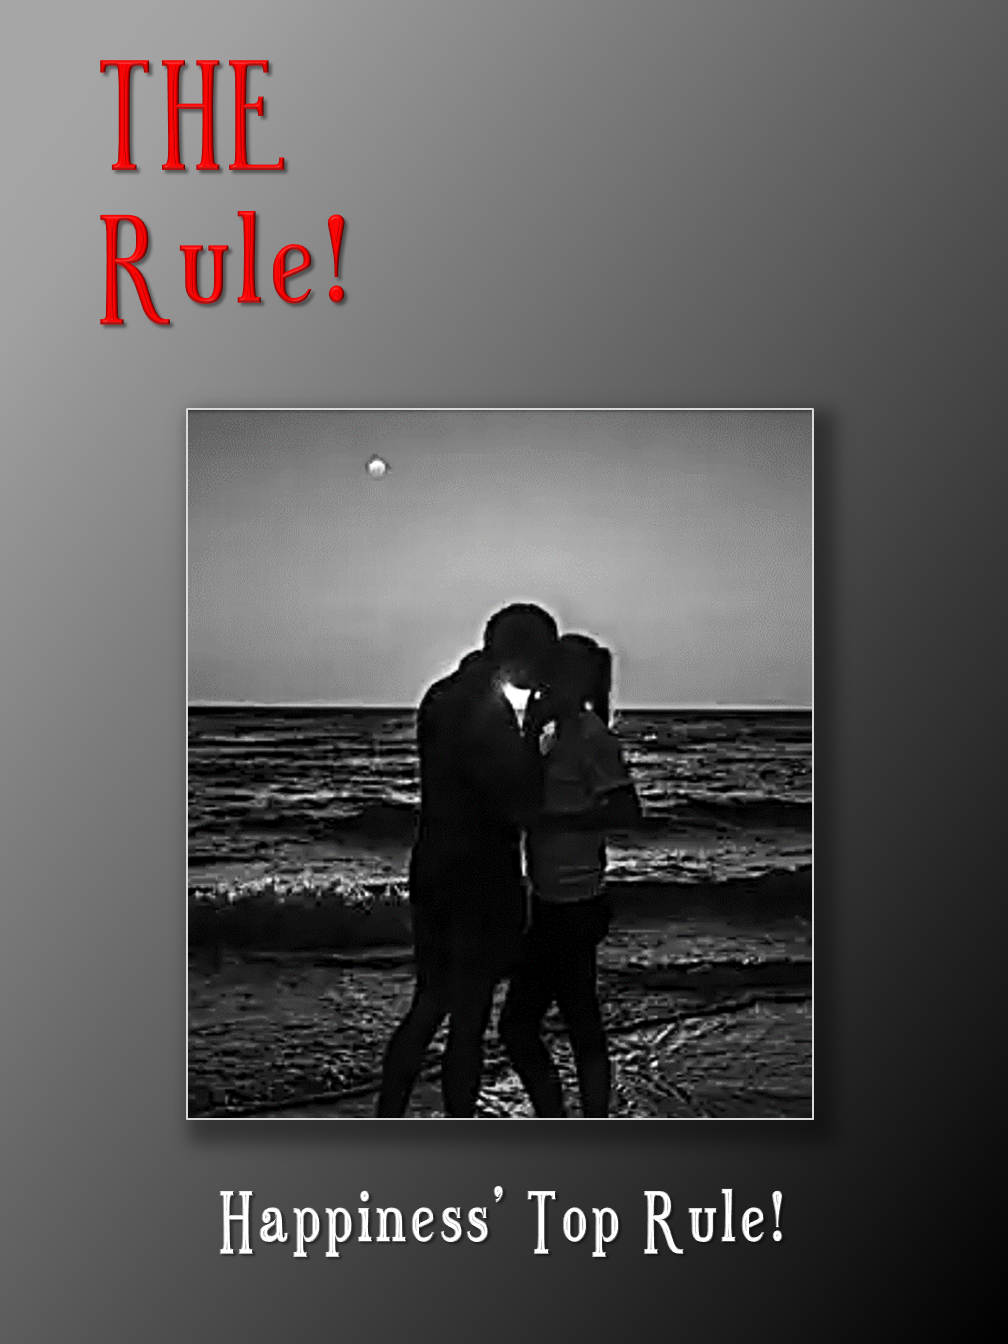 The Rule!